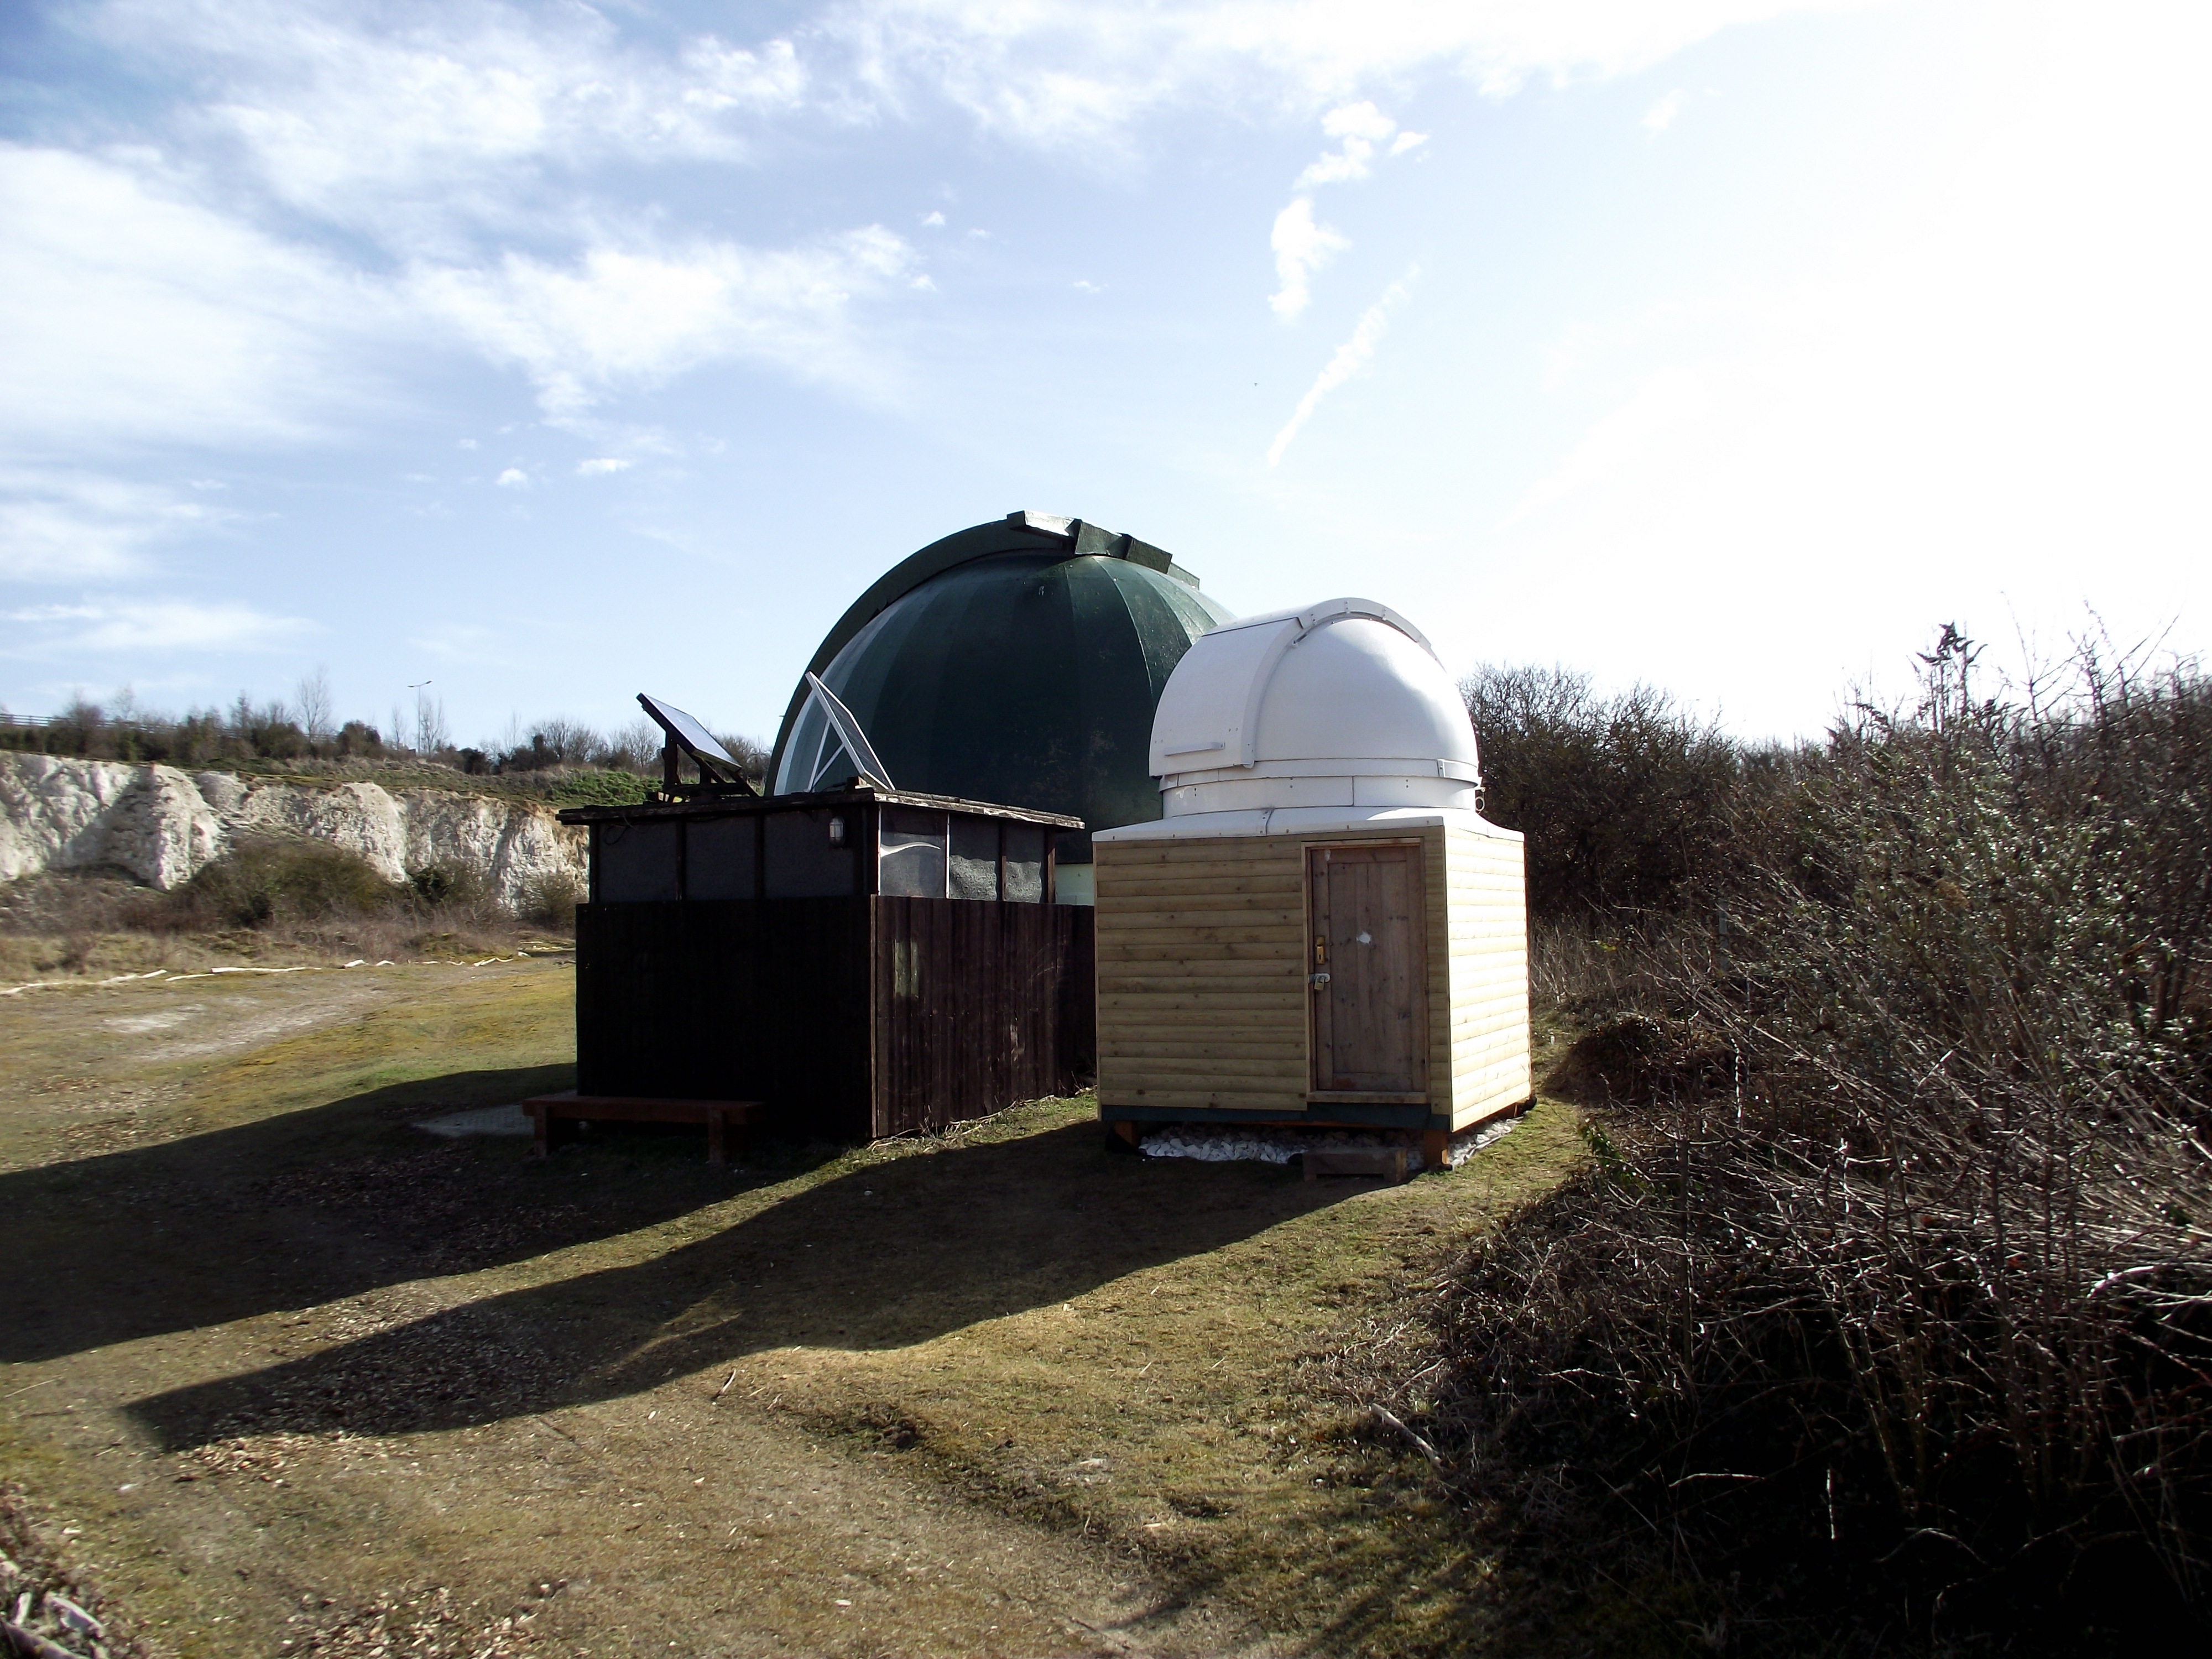 The Thanet Observatories Monkton Nature Reserve